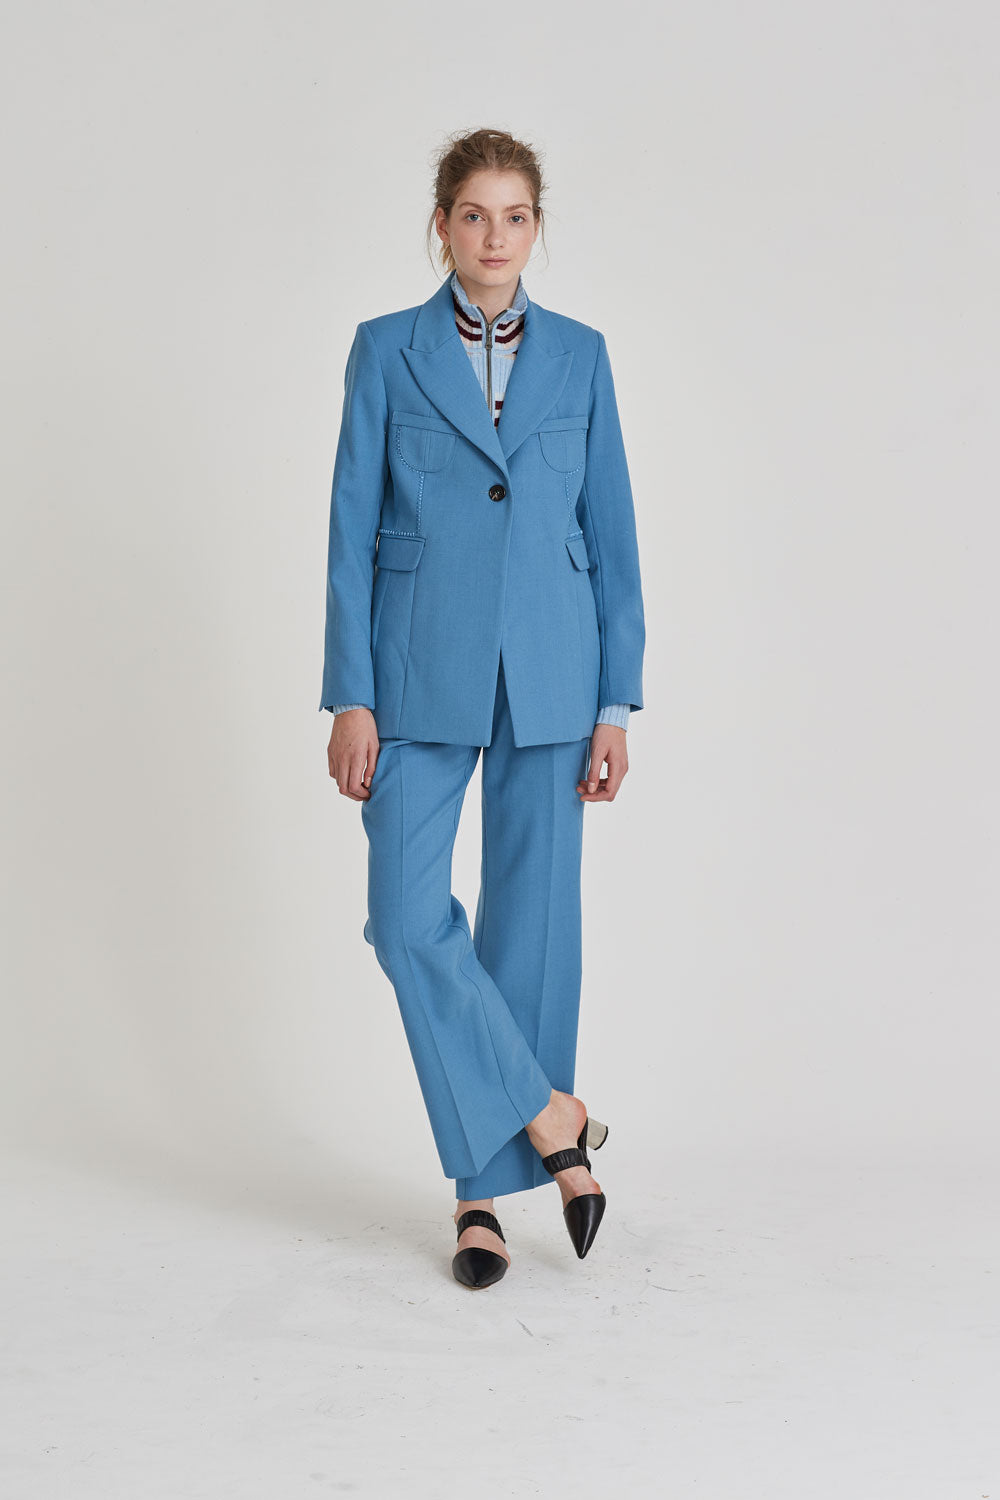 Partner Single Breasted Blazer Light Blue - Wynn Hamlyn — Shop